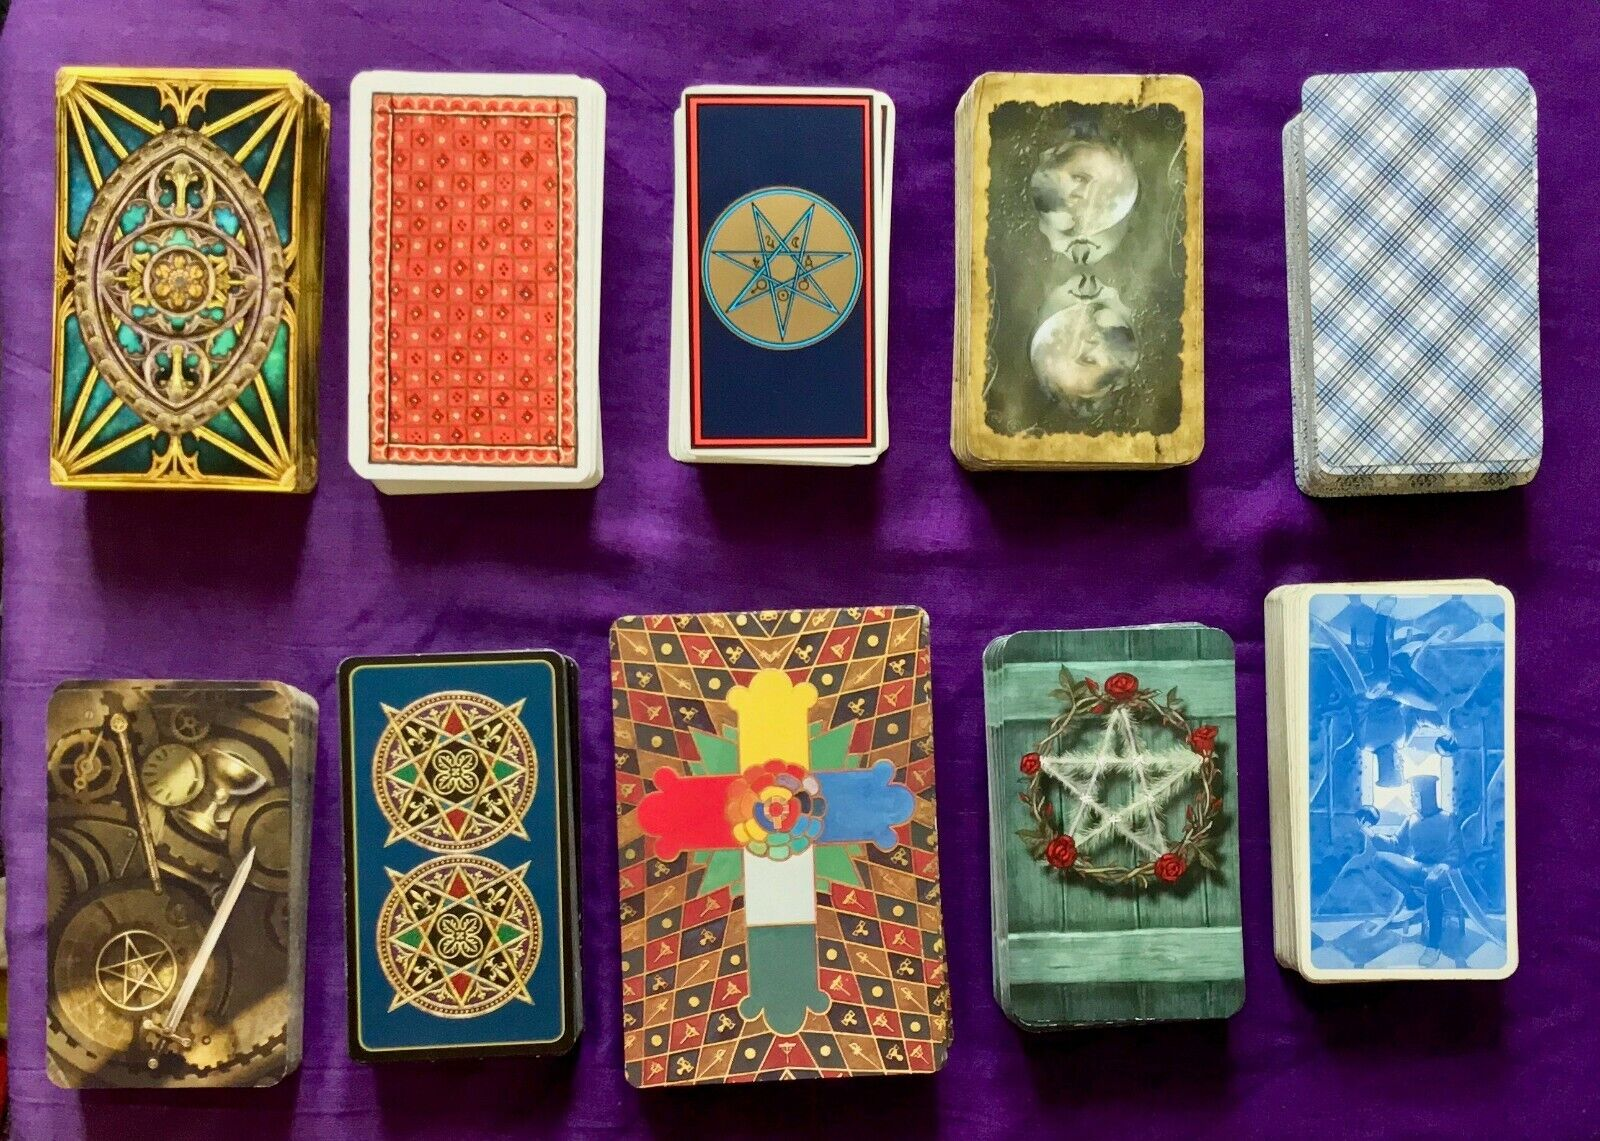 20 Min Tarot Psychic Reading By Phone. No Card Limit, Accurate, Fast Scheduling. - $5.00